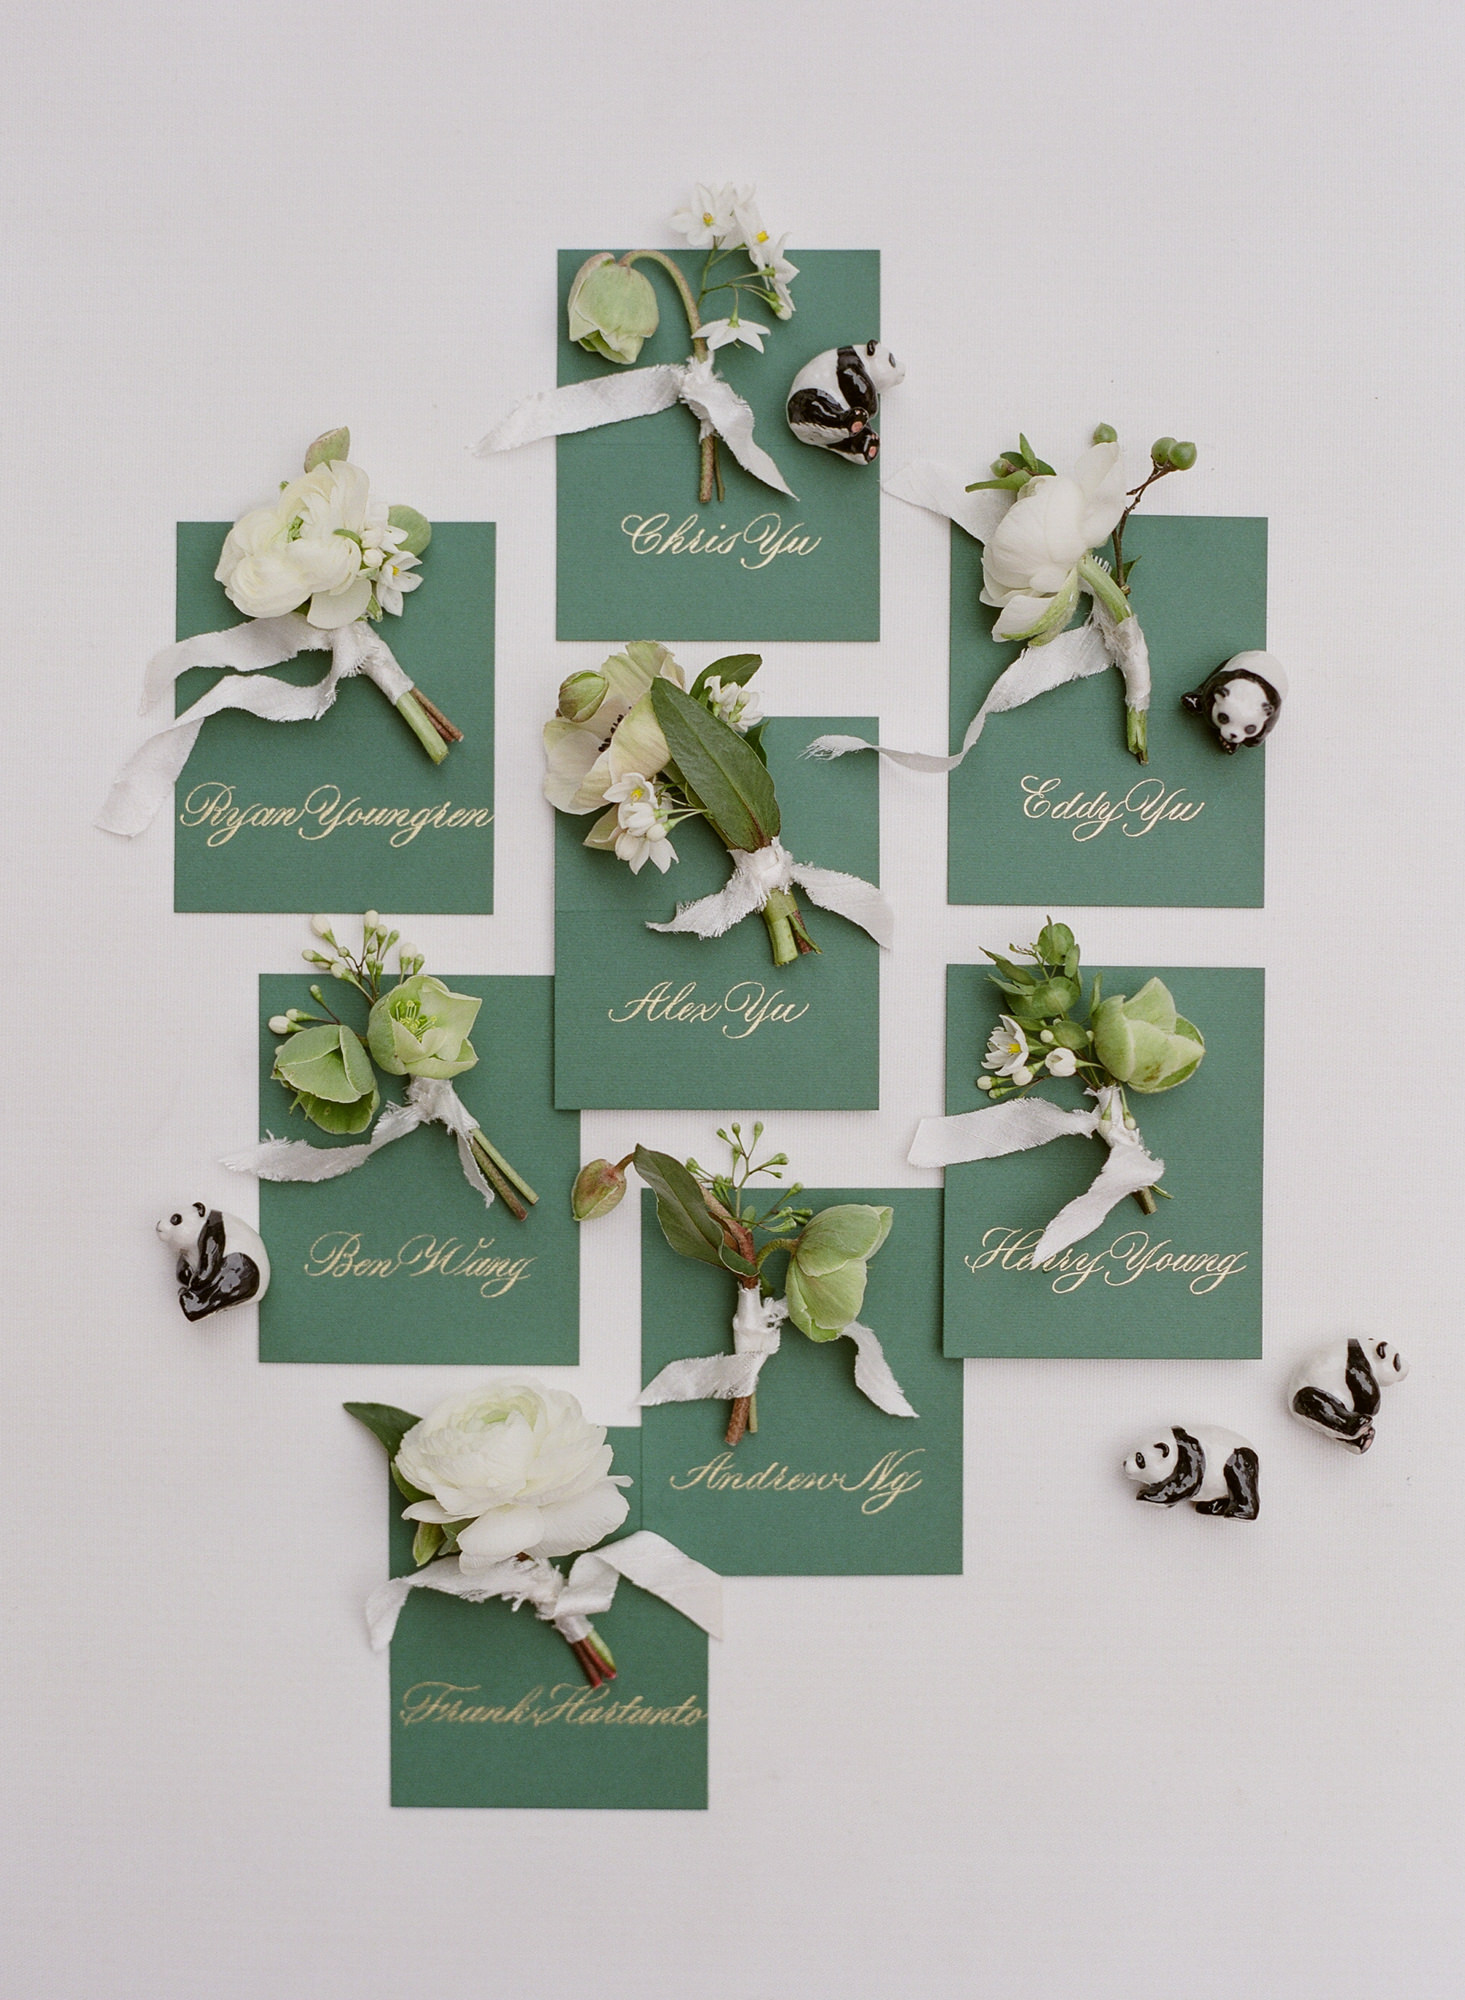 Flatlay of sage name cards with spring boutonnieres - Greg Finck Photography